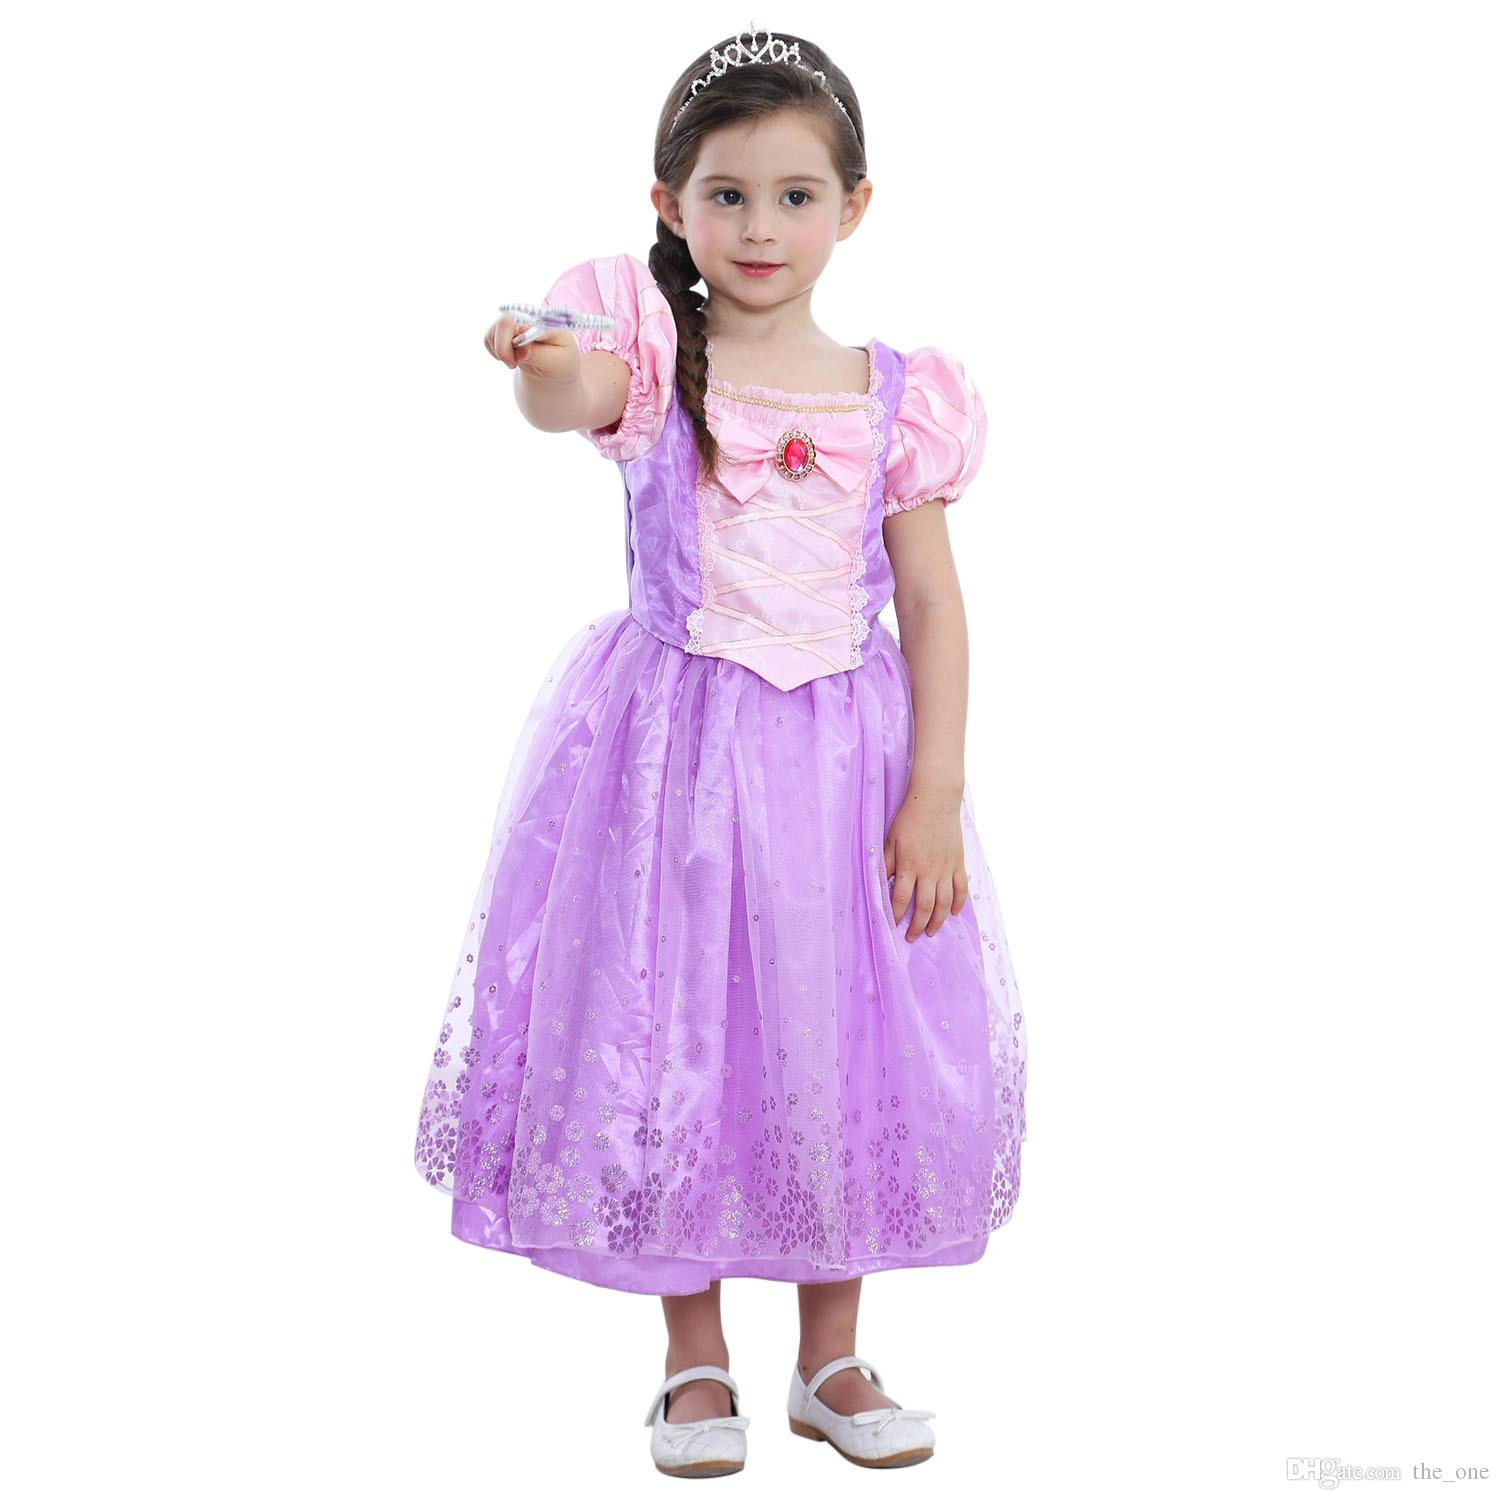 2018 Girls Rapunzel Fancy Dress Costume Kids Princess Outfit Cosplay Dress For Girl Tangled Princess Purple Tulle Dress From The_one $12.13 | Dhgate.Com  sc 1 st  DHgate.com & 2018 Girls Rapunzel Fancy Dress Costume Kids Princess Outfit Cosplay ...